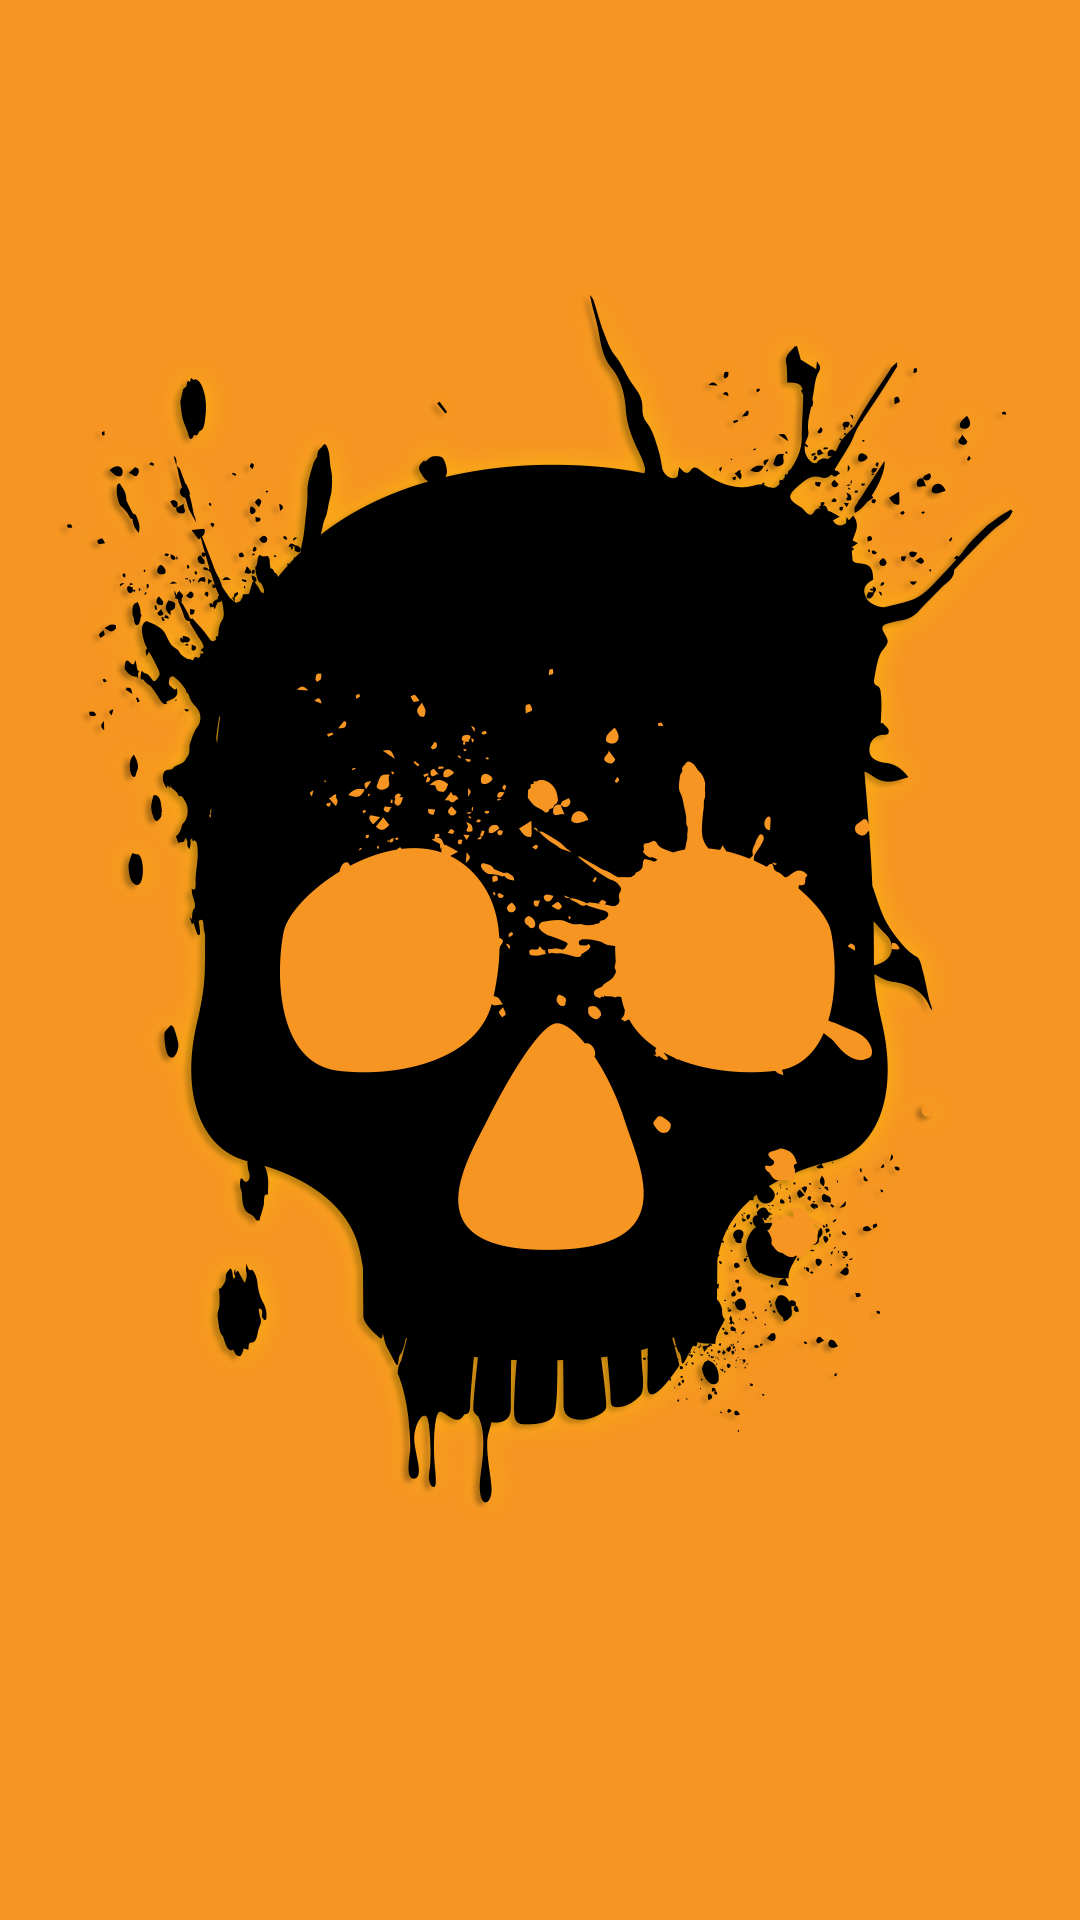 Wasted Skull 1080 X 1920 FHD Wallpaper